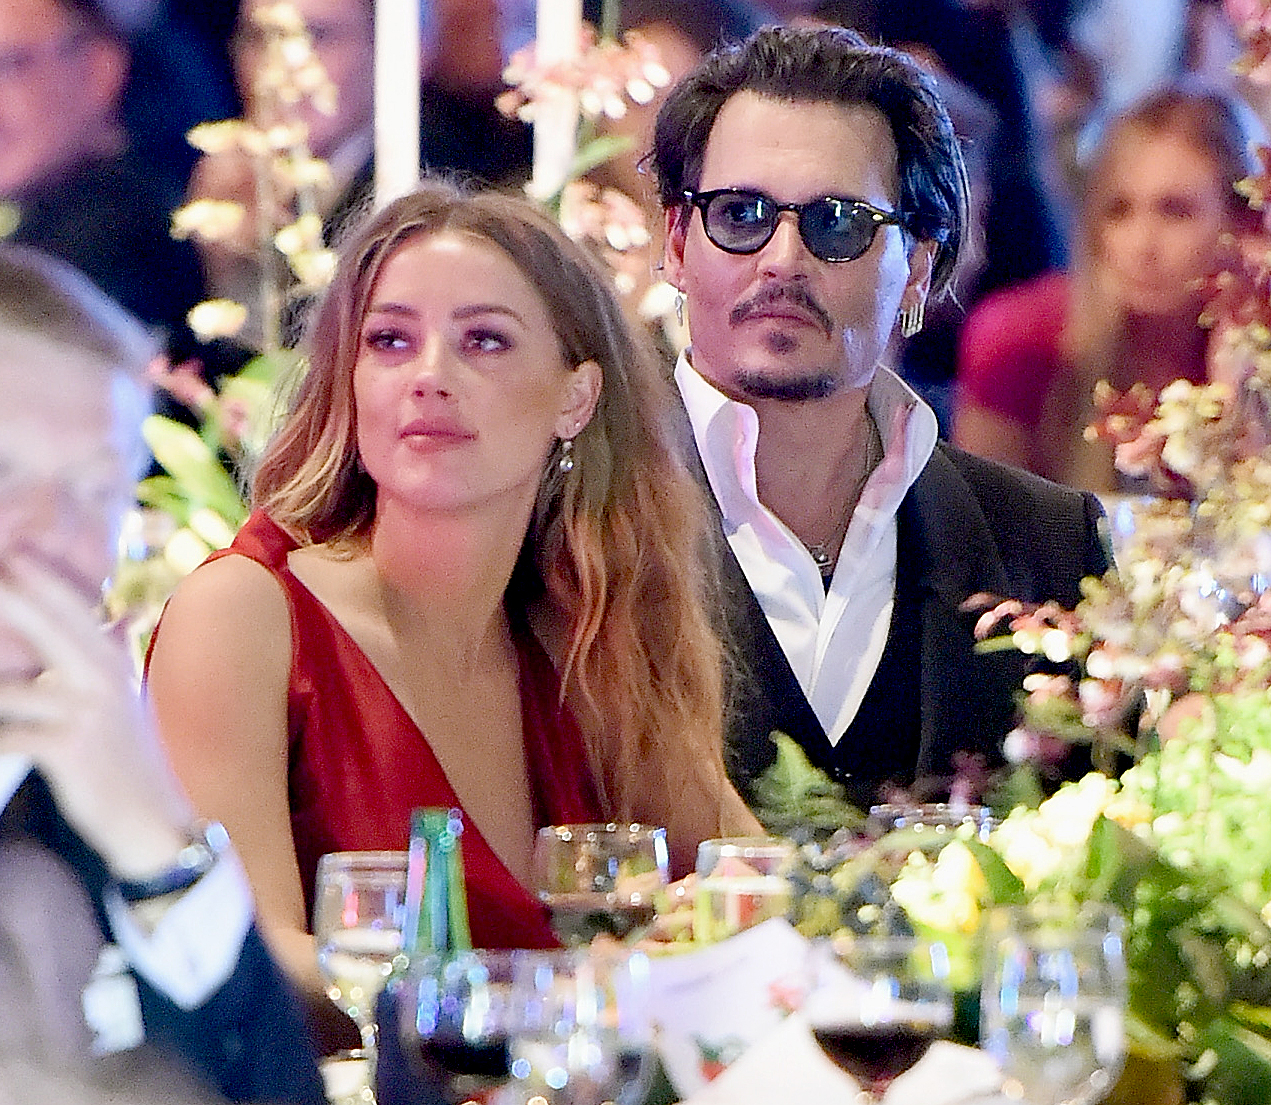 Johnny Depp and Amber Heard attended The Art of Elysium 2016 Heaven Gala in Culver City, California.